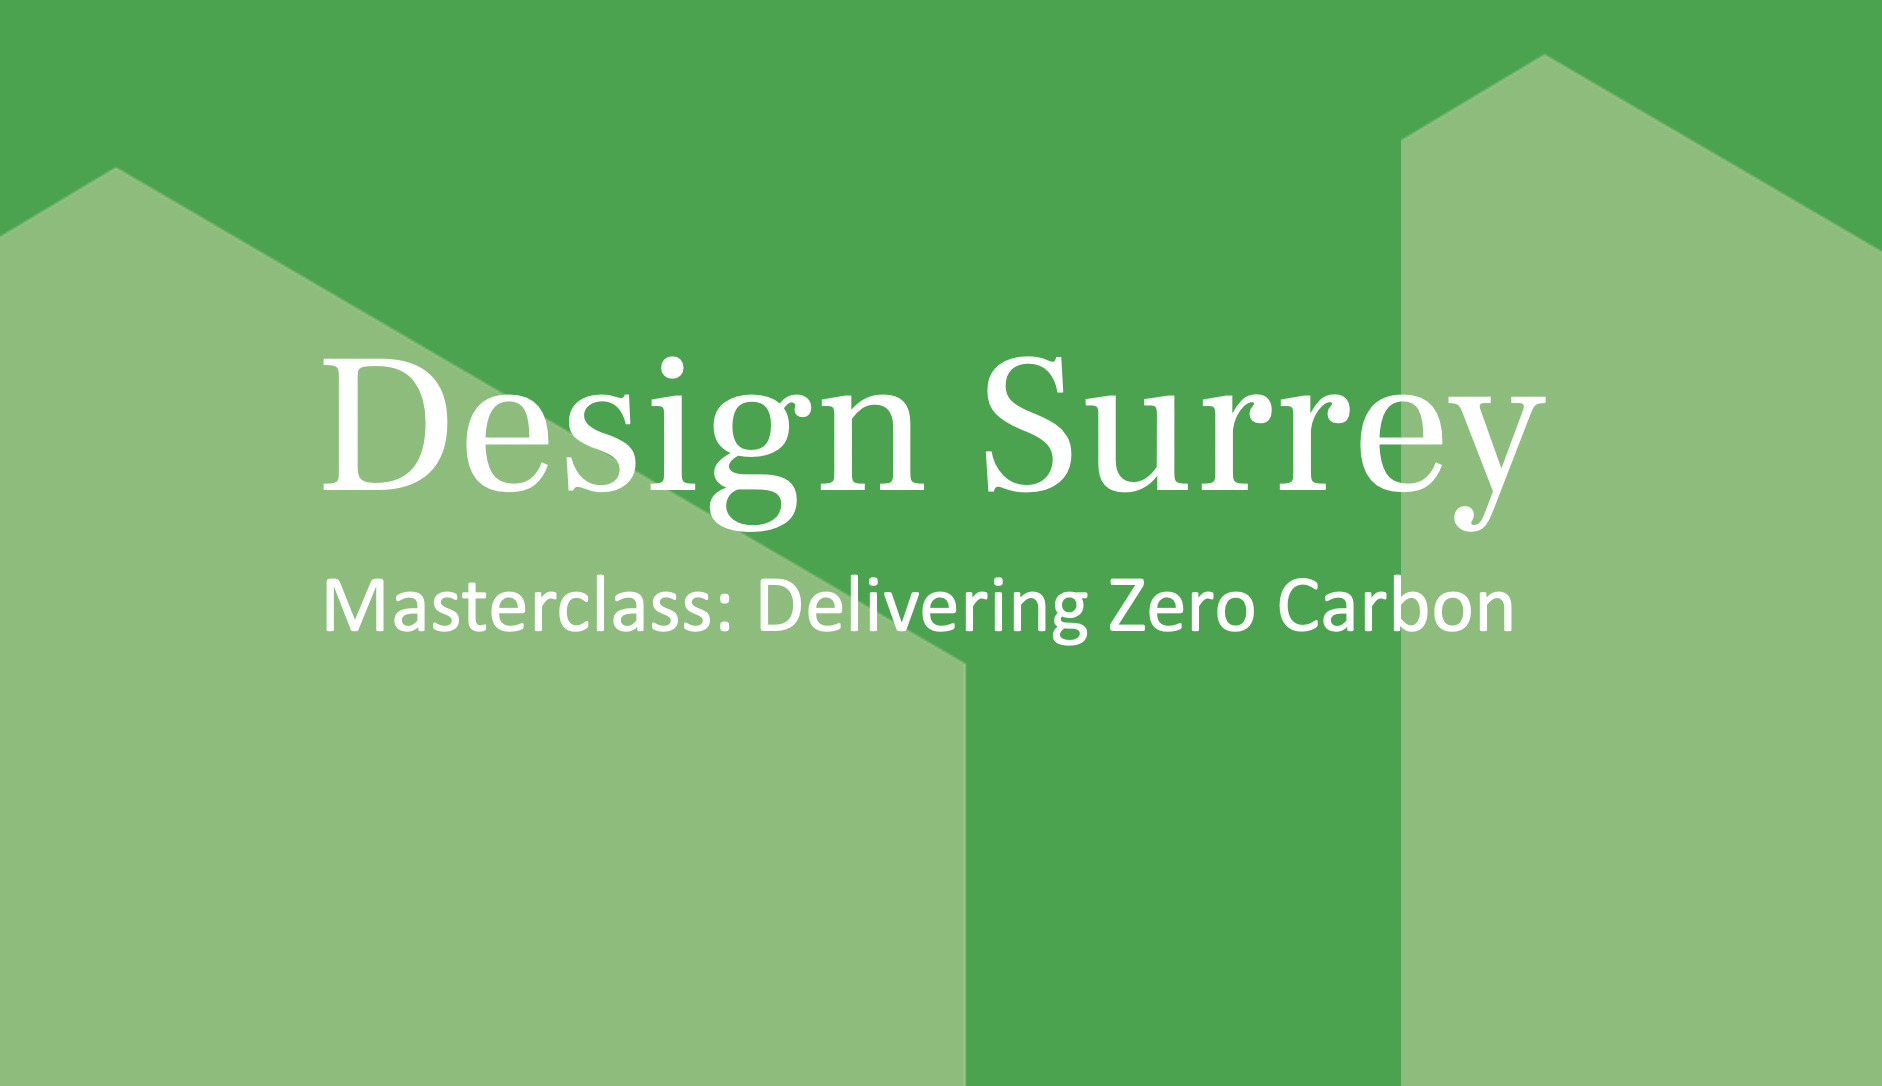 Design South East — Design Surrey: Masterclass: Delivering Zero Carbon: Climate Emergency (2050 targets); commitments